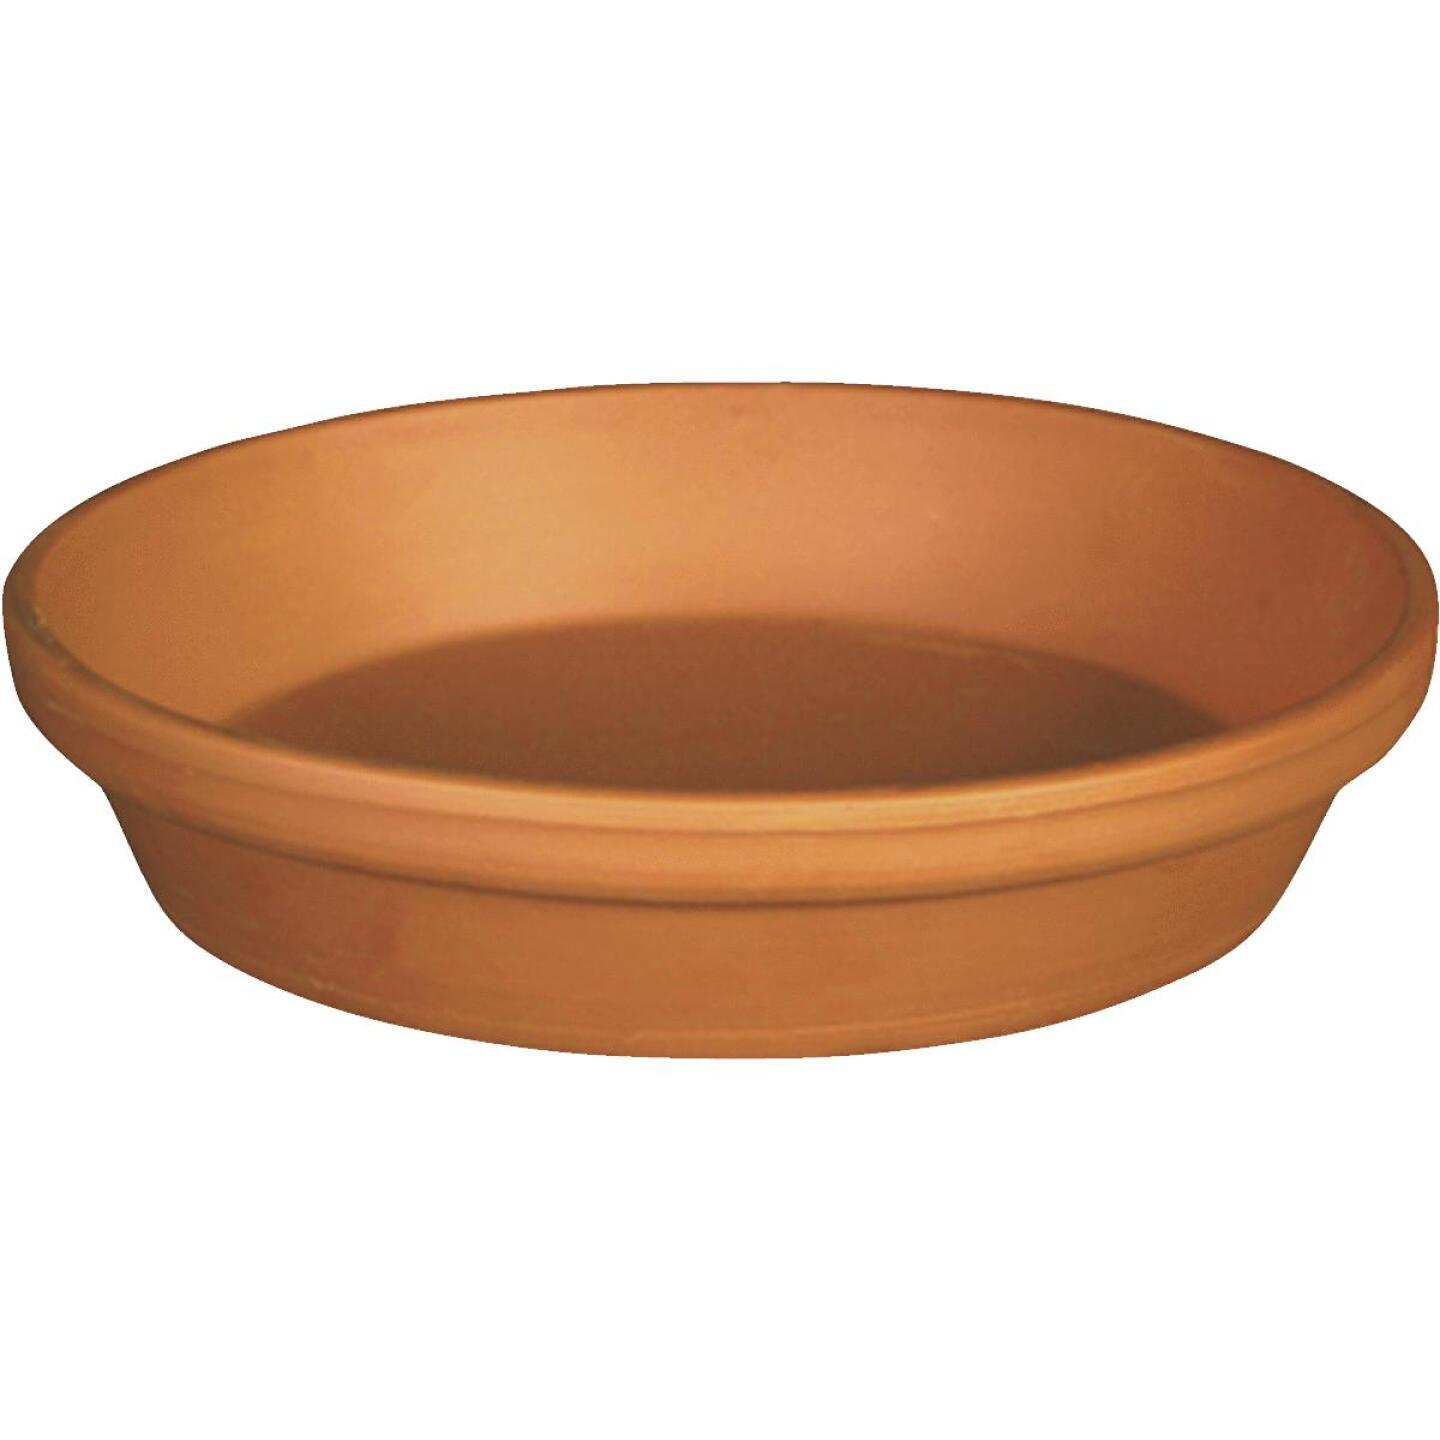 Ceramo 6 In. Terracotta Clay Standard Flower Pot Saucer Image 1